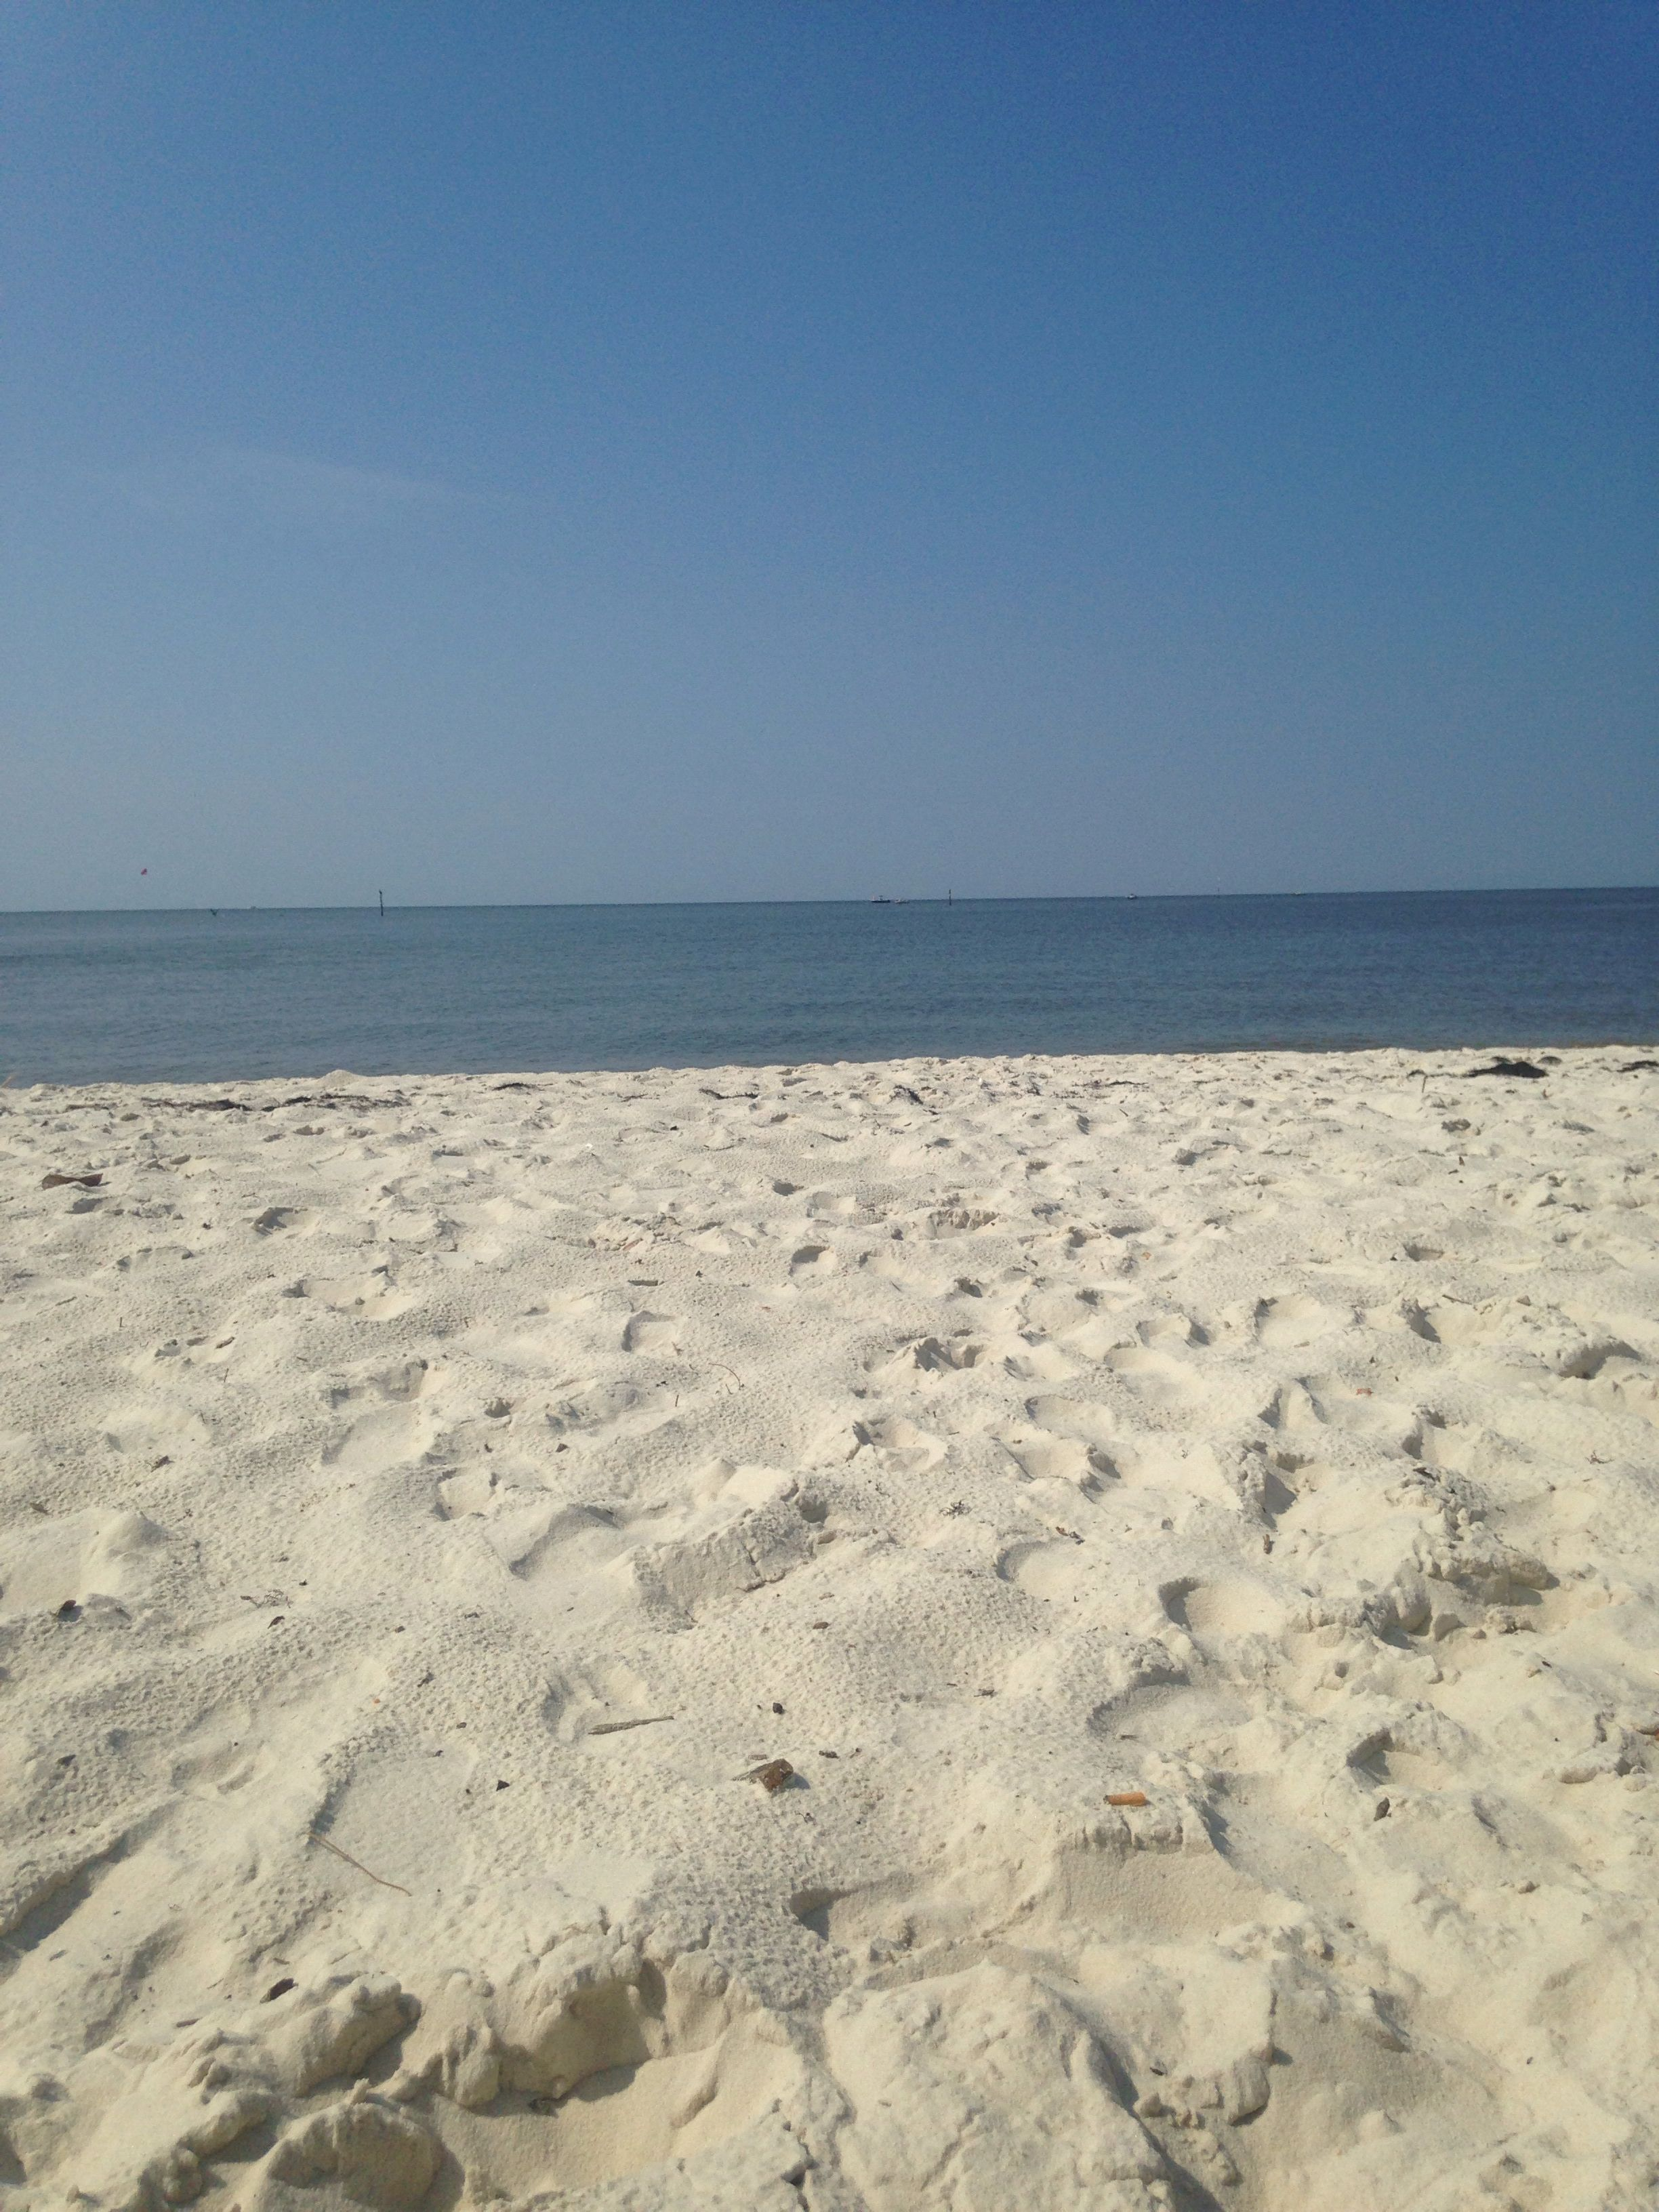 Biloxi Ms Beautiful View With Calm Lapping Waves But The Water Is